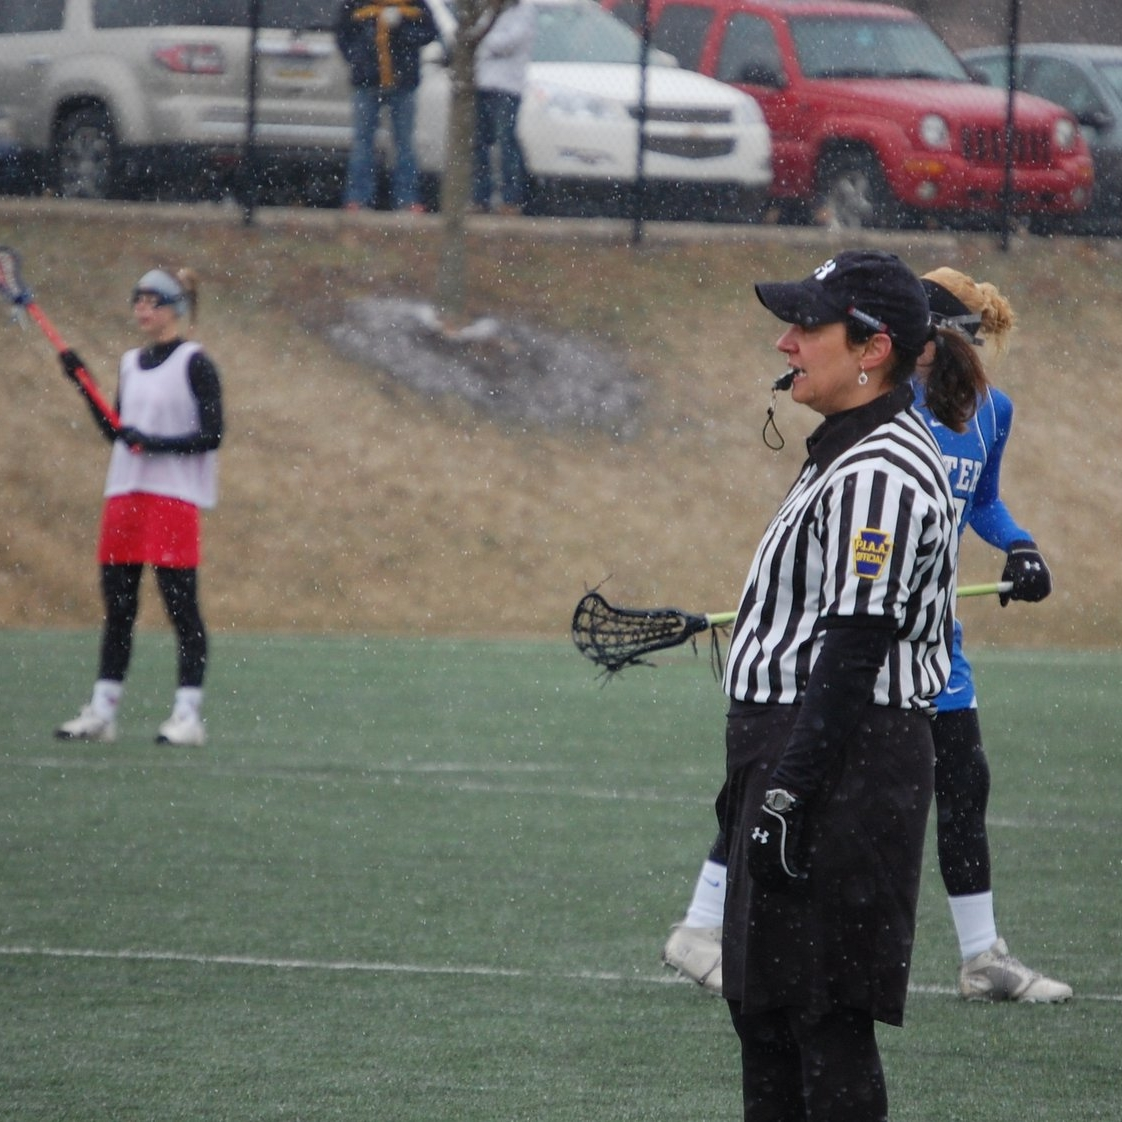 referee2.png